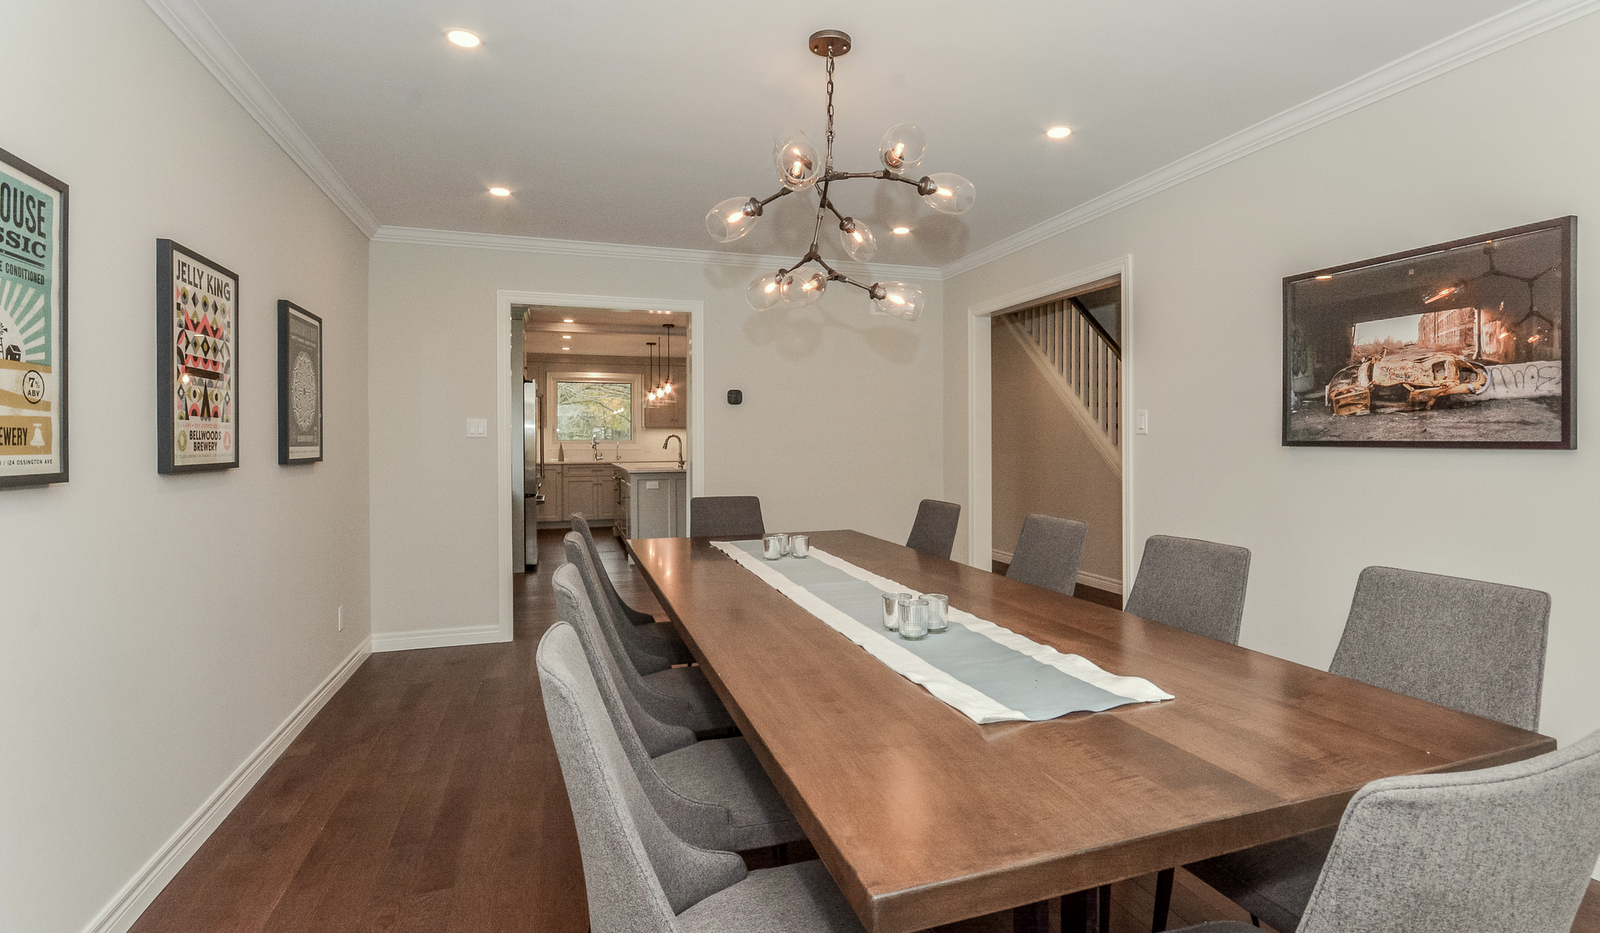 Repurposing the original living room, this large dining table has ample room for entertaining.